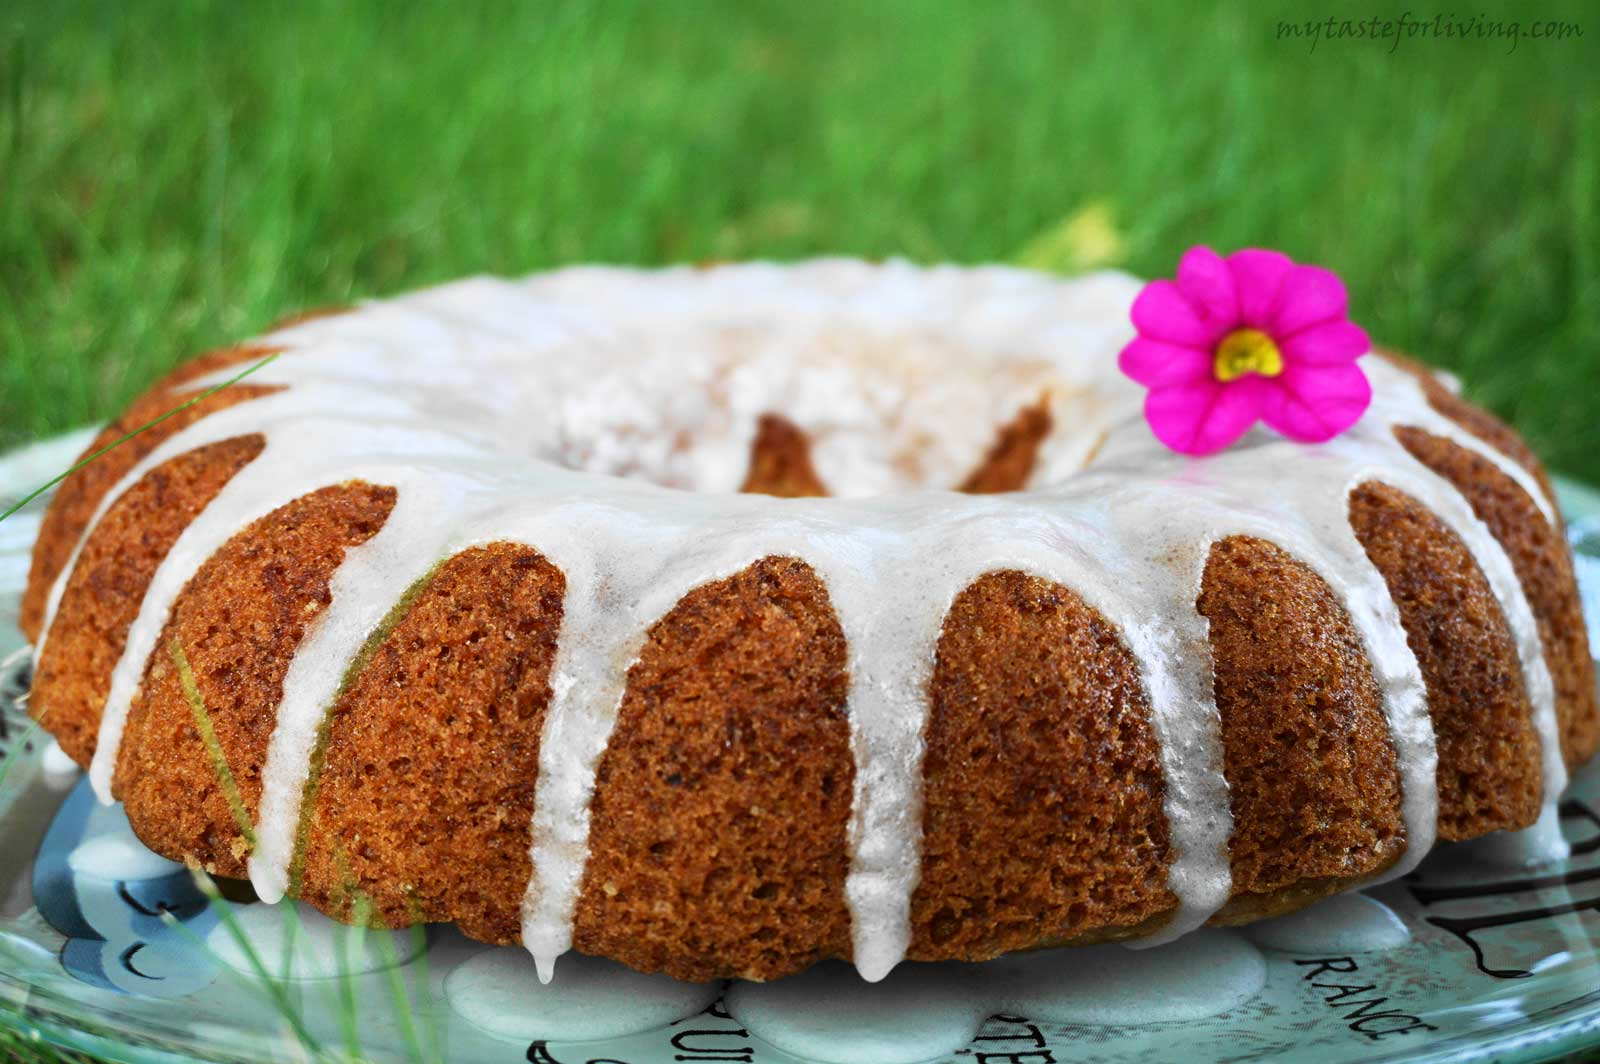 Lemon cake with zucchini and lemon glaze. Why not!? Try it! The combination may sound strange, but the truth is that you get the perfect, fragrant, fresh and delicious lemon cake, and the glaze gives it a fine finish.